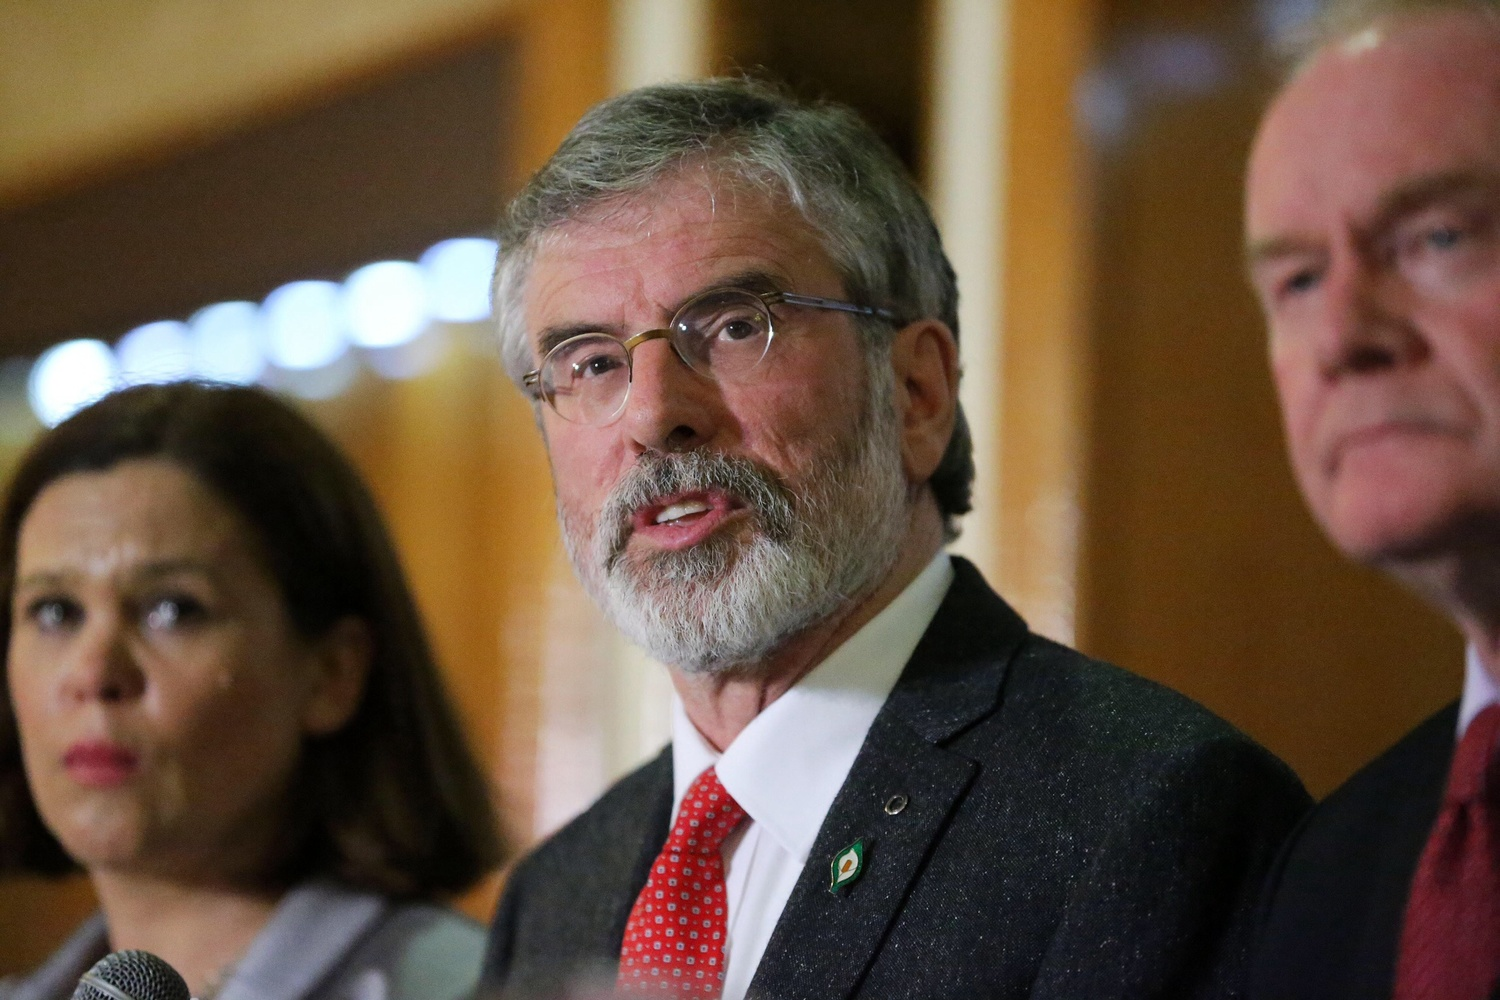 Sinn Féin President Gerry Adams after he was freed by police